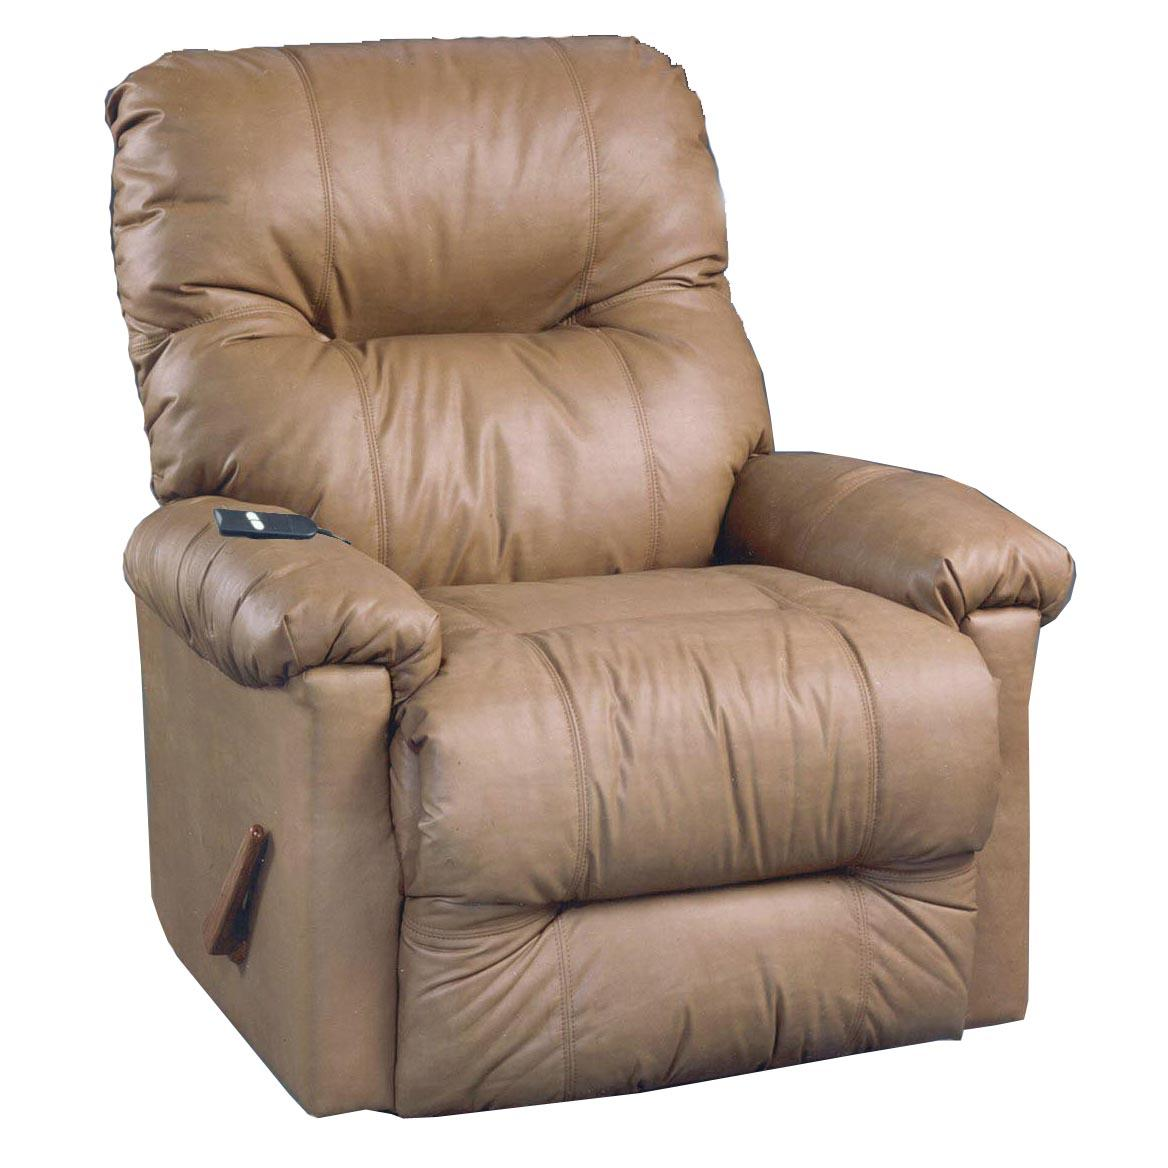 power lift chair recliner camping chairs sale best home furnishings petite recliners wynette